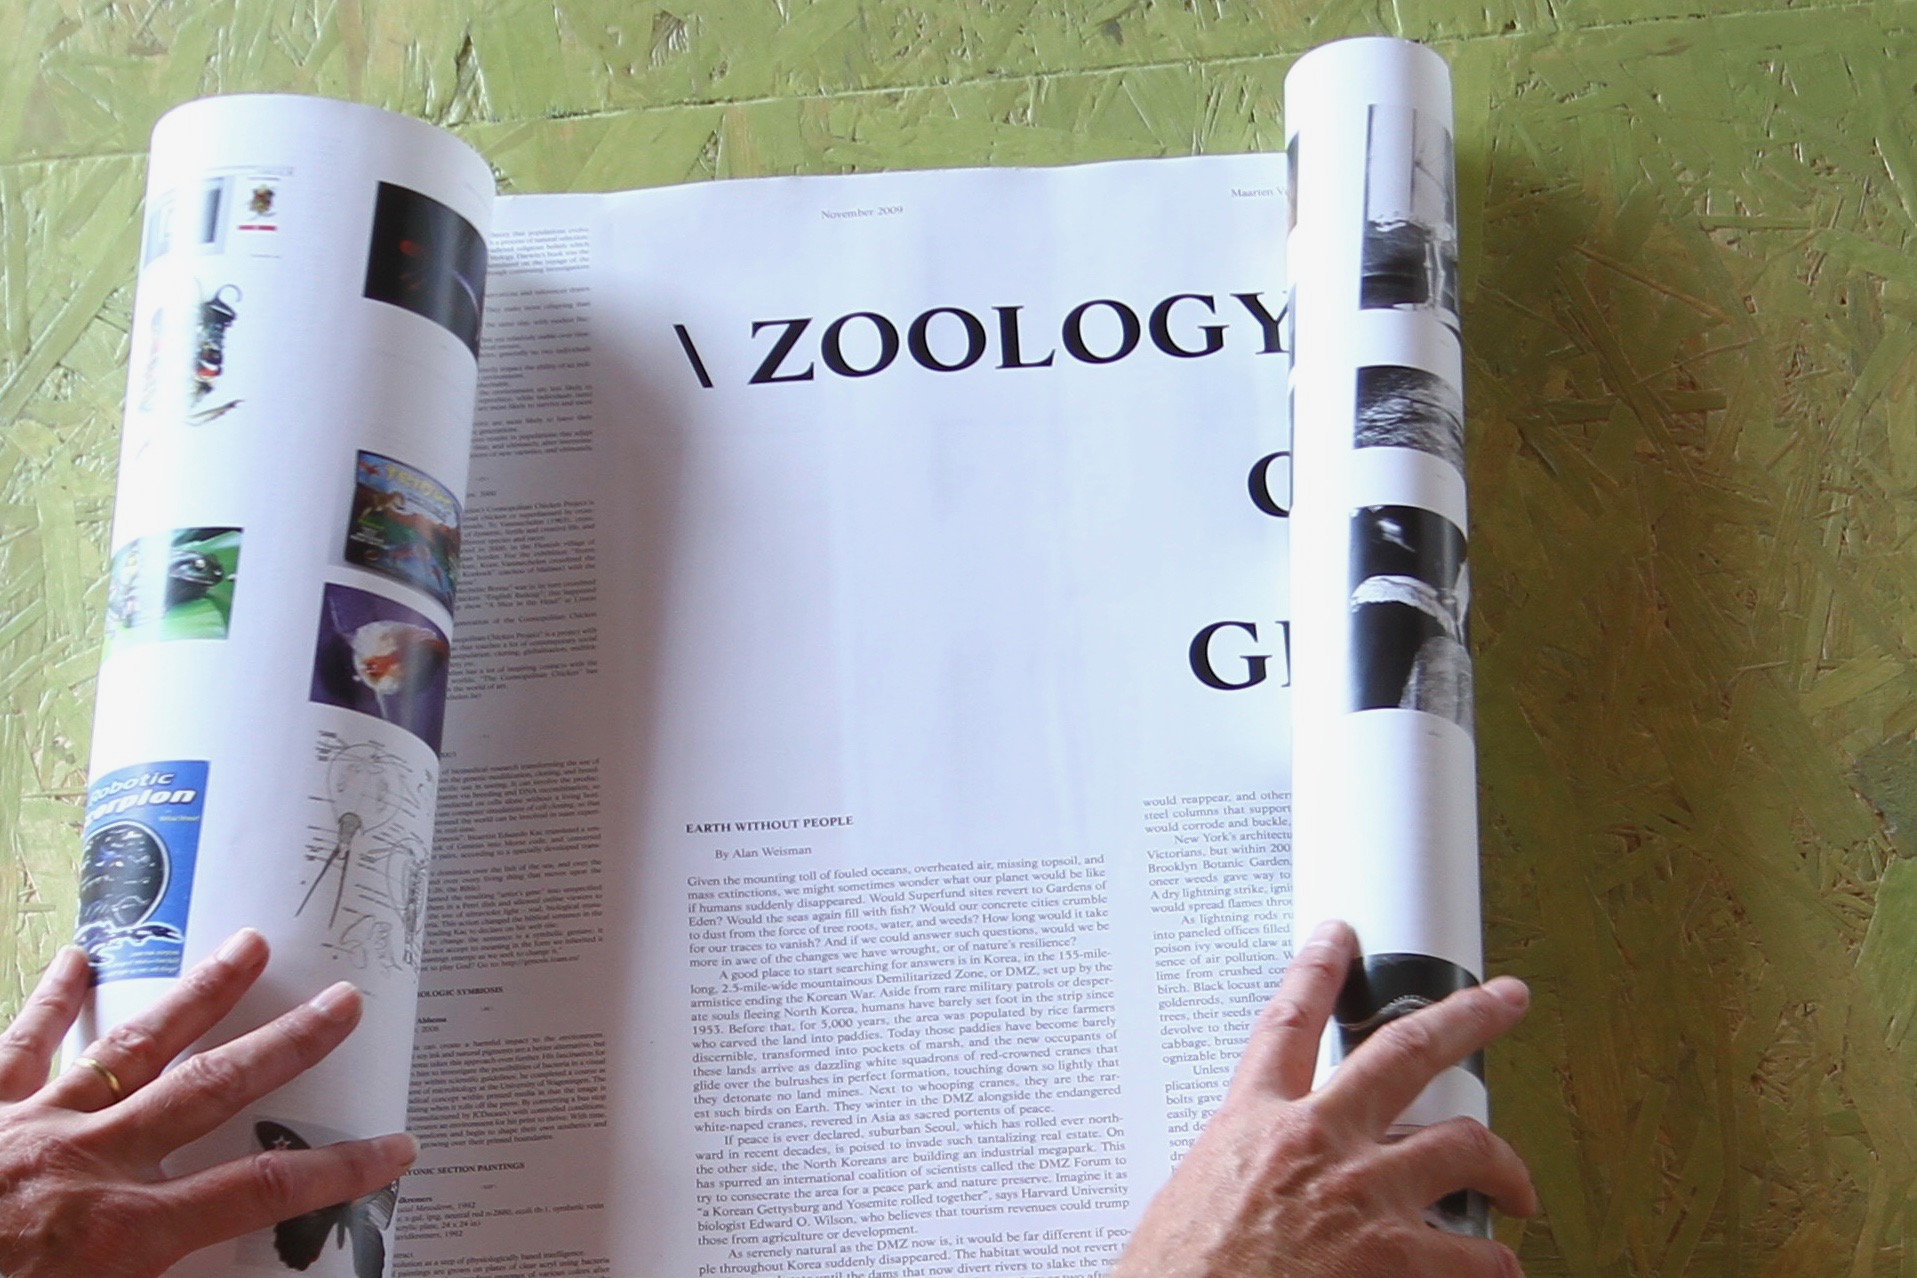 Nr. 64 - \ ZOOLOGY OF COSMLOGY \ ZG \ 1